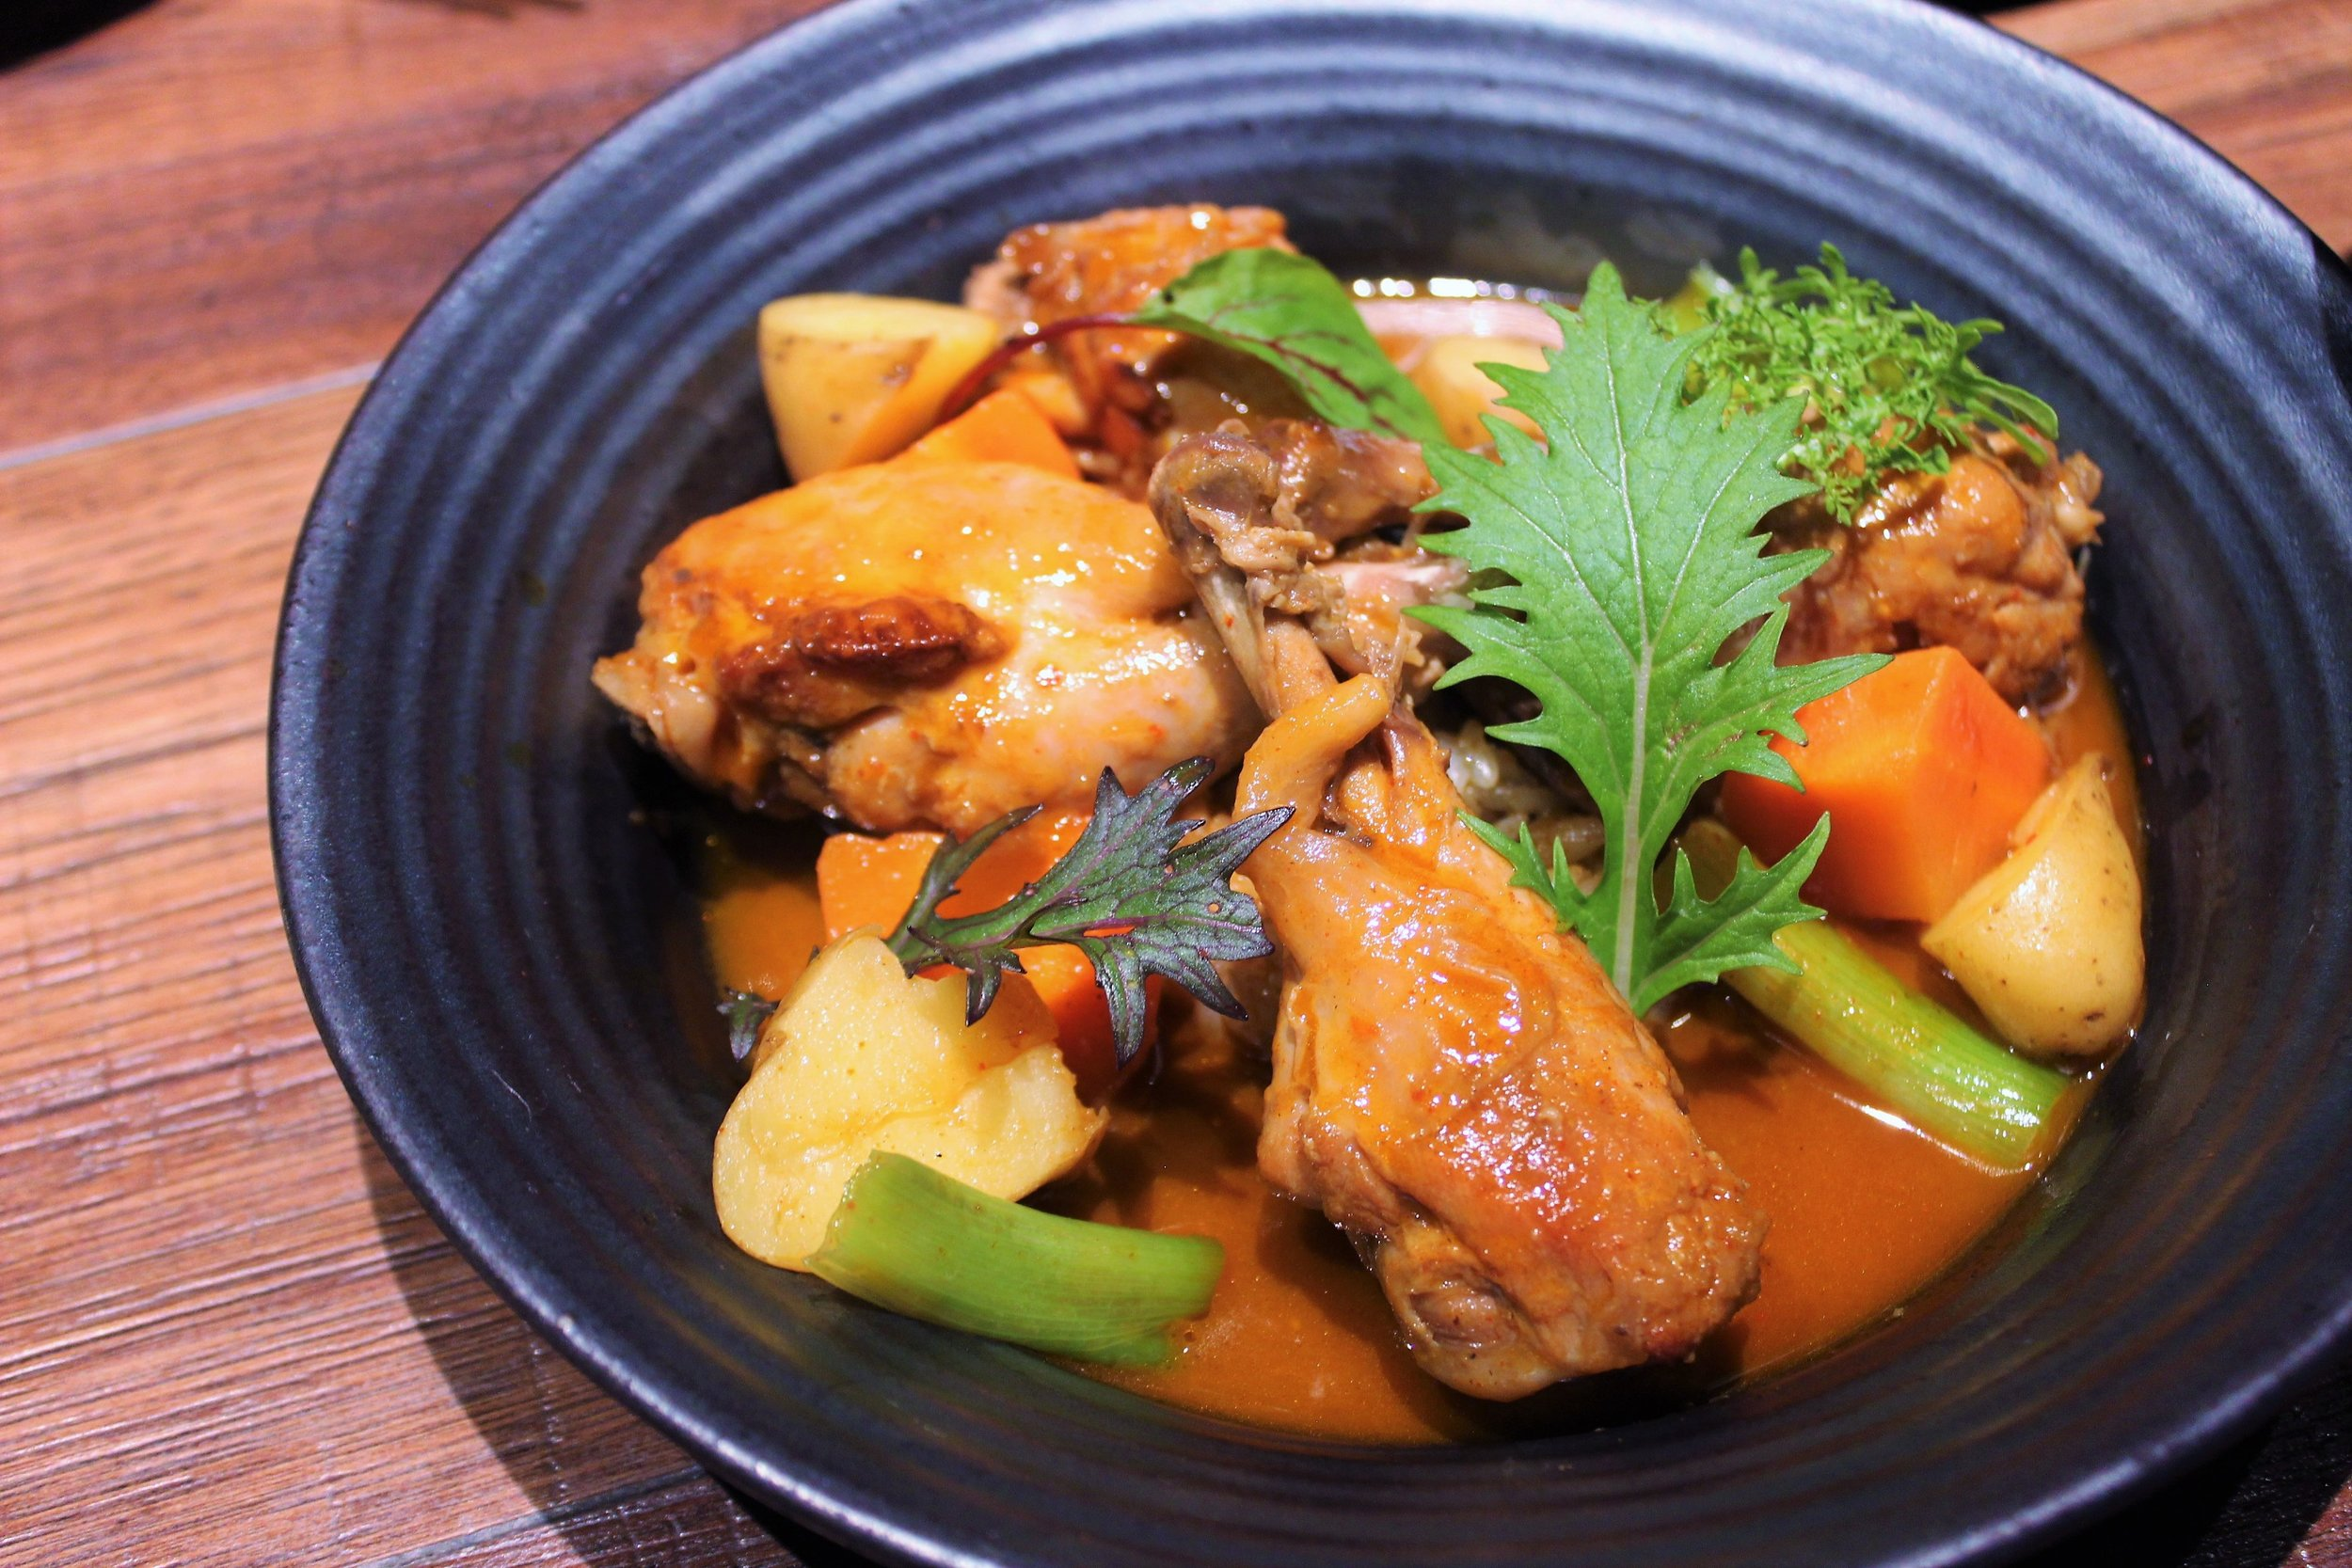 Gochujang Braised Chicken with Root Vegetables at Oiji in New York City